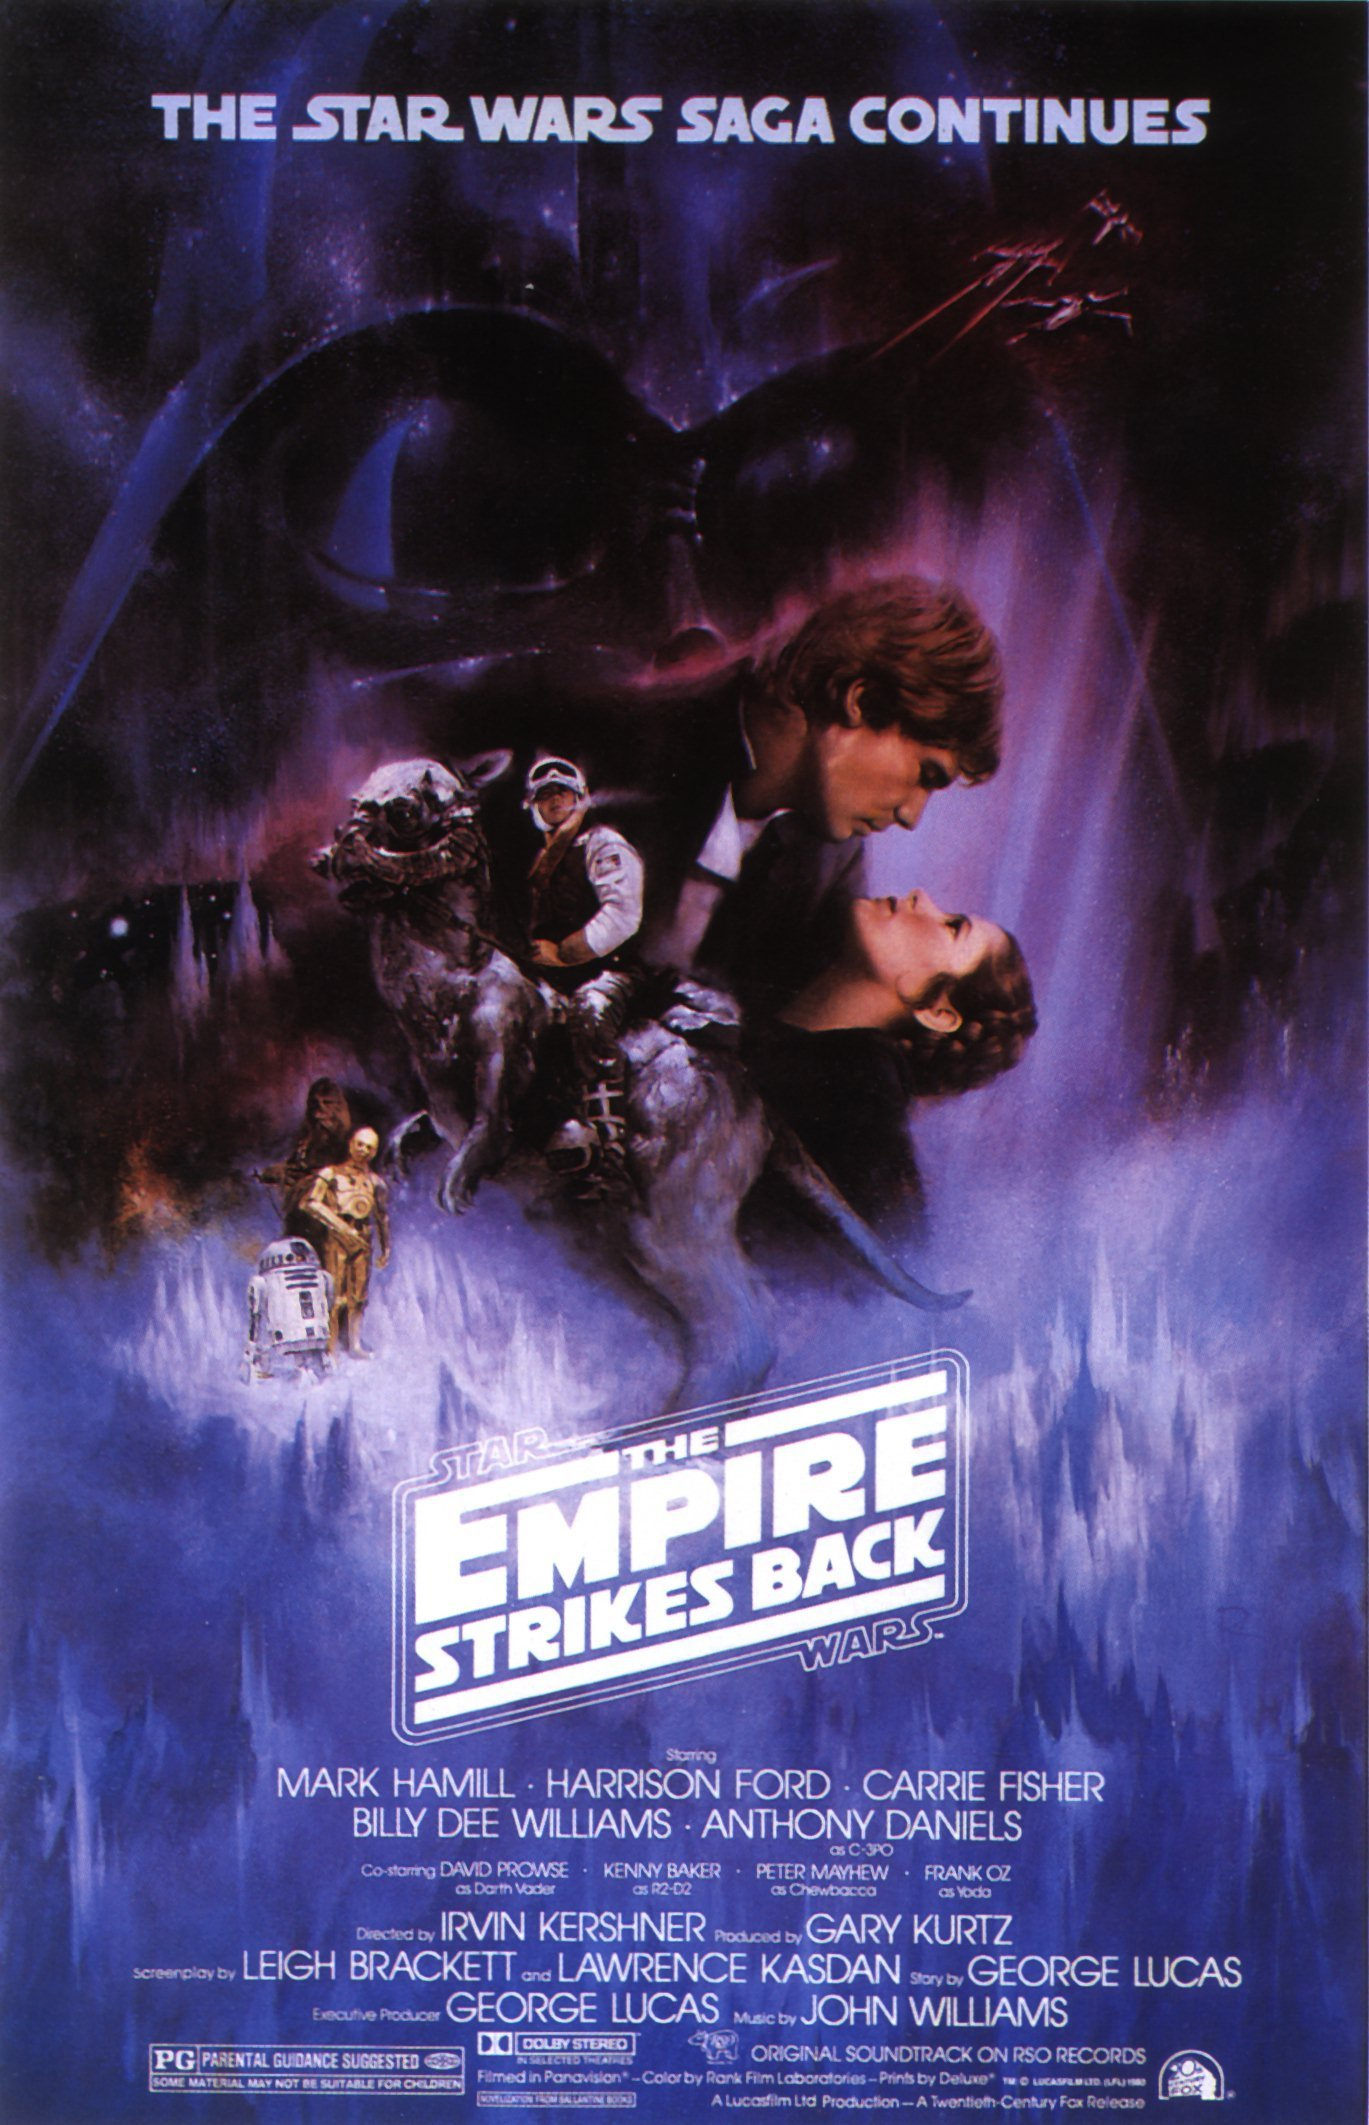 Star Wars Empire Strikes Back Images Movie Poster HD Wallpaper And Background Photos